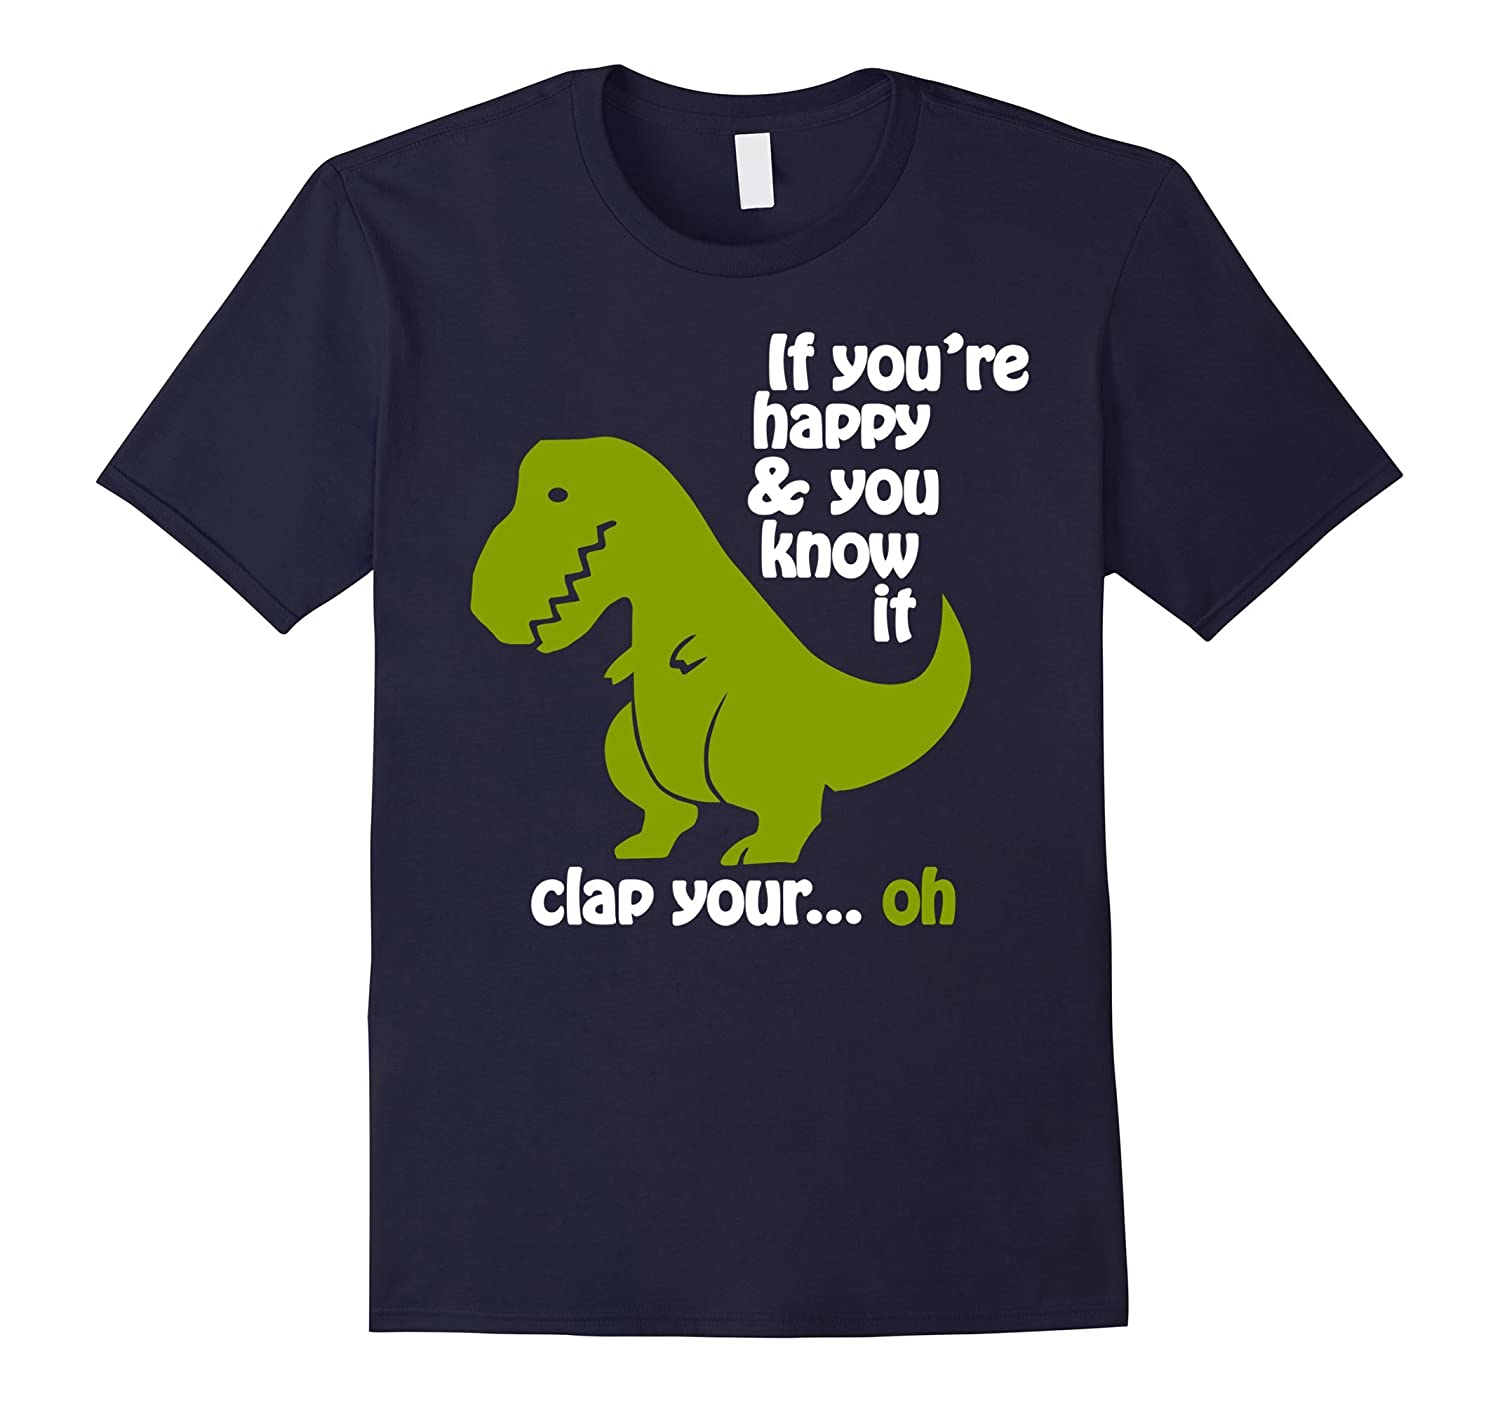 Funny Shirt - T-rex If youre happy  you know it-TD